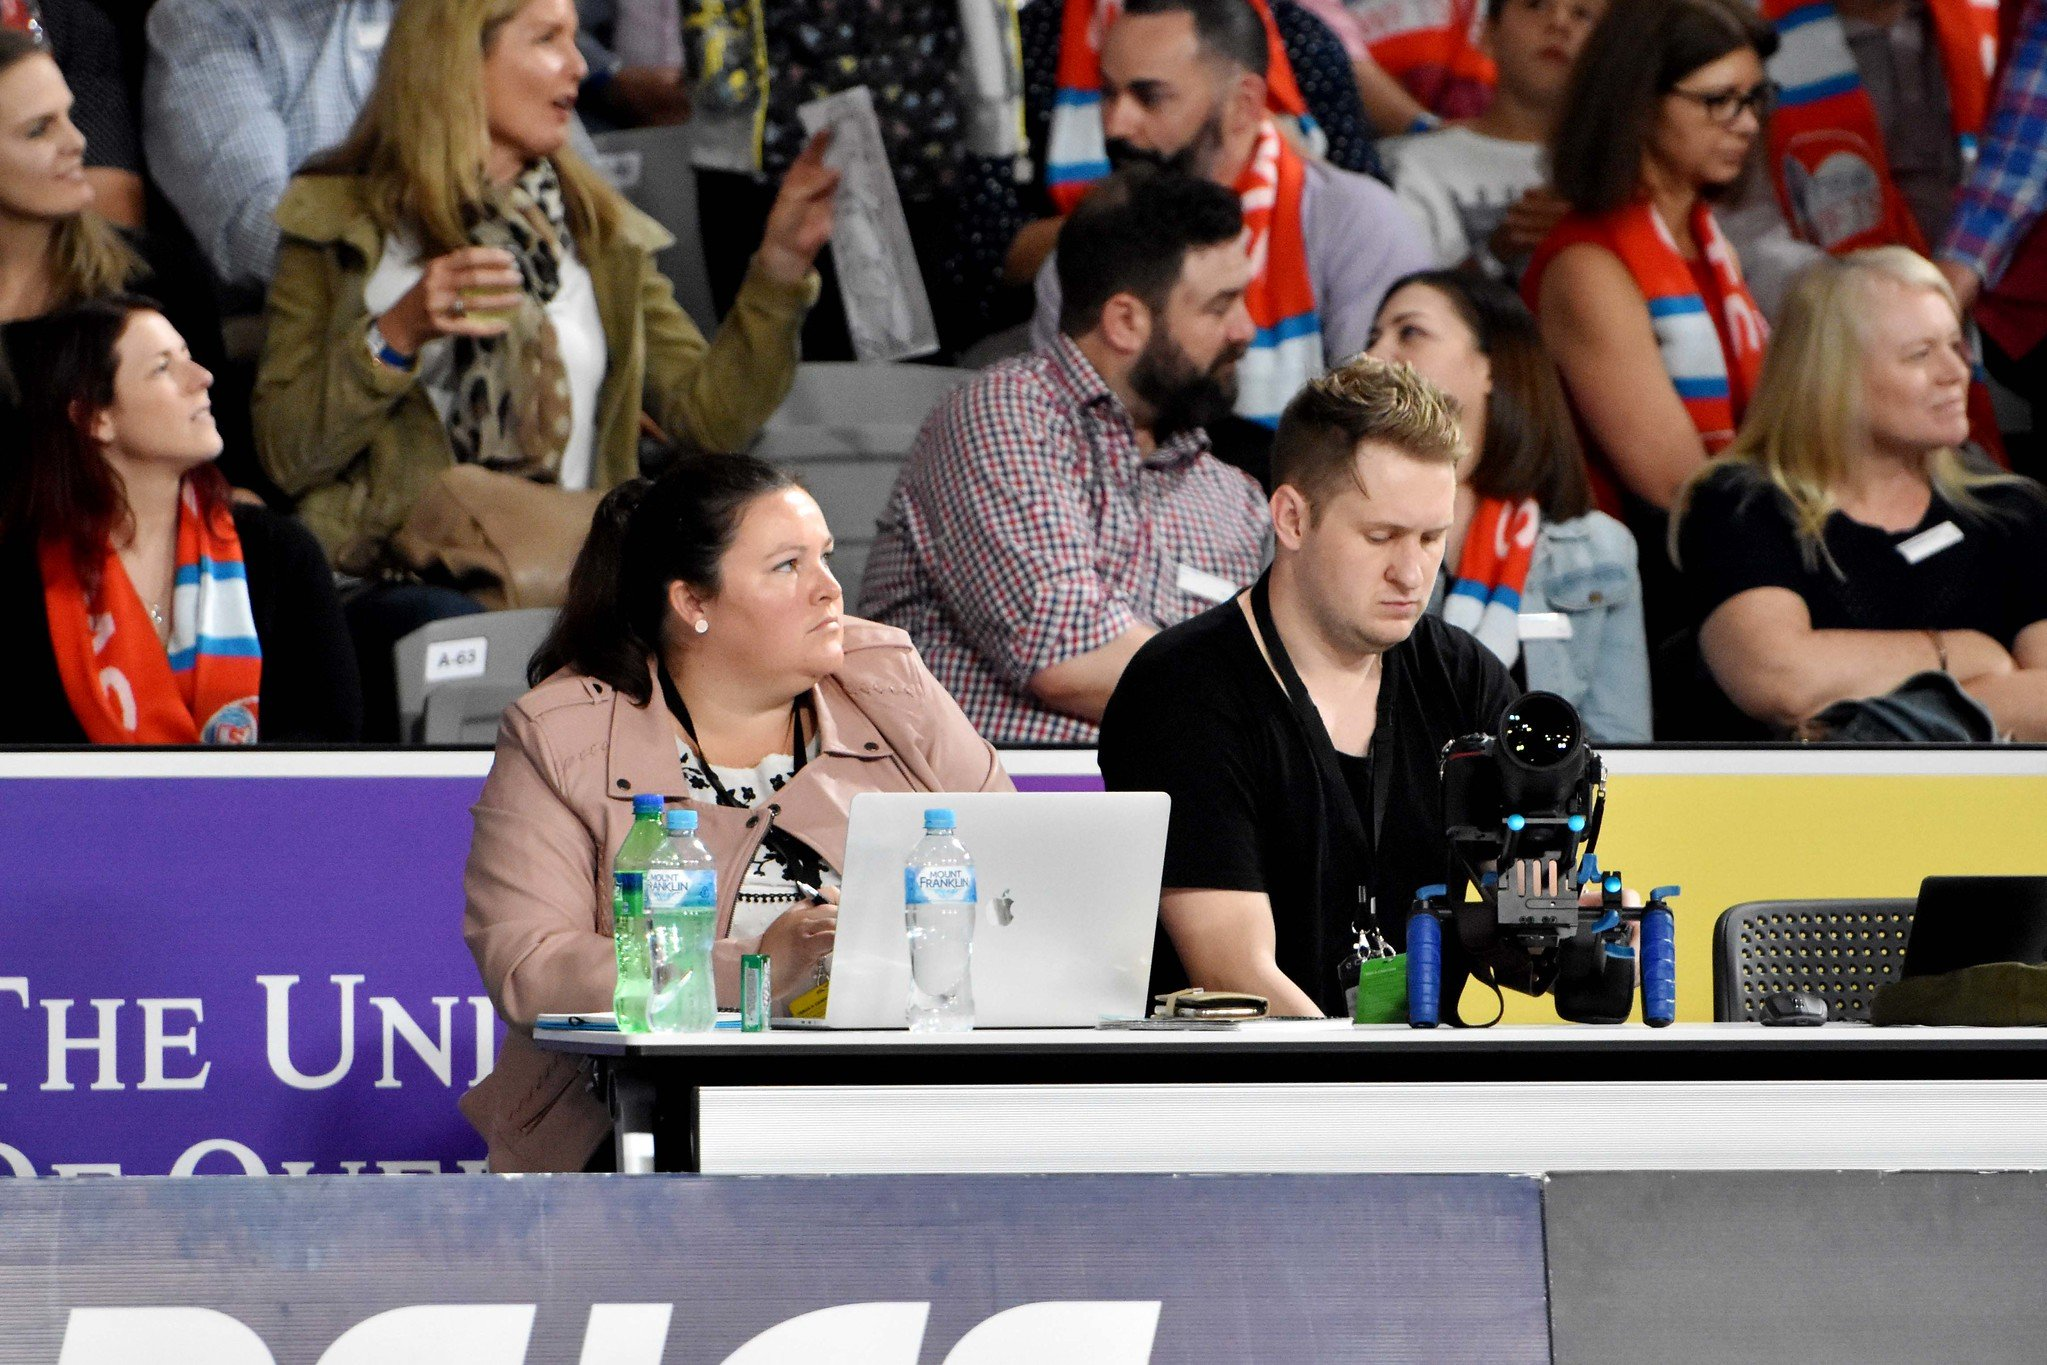 On the bench at Nissan Arena, Suncorp Super Netball, Unique focus, Katrina Nissen, Copywriting, sports journalism